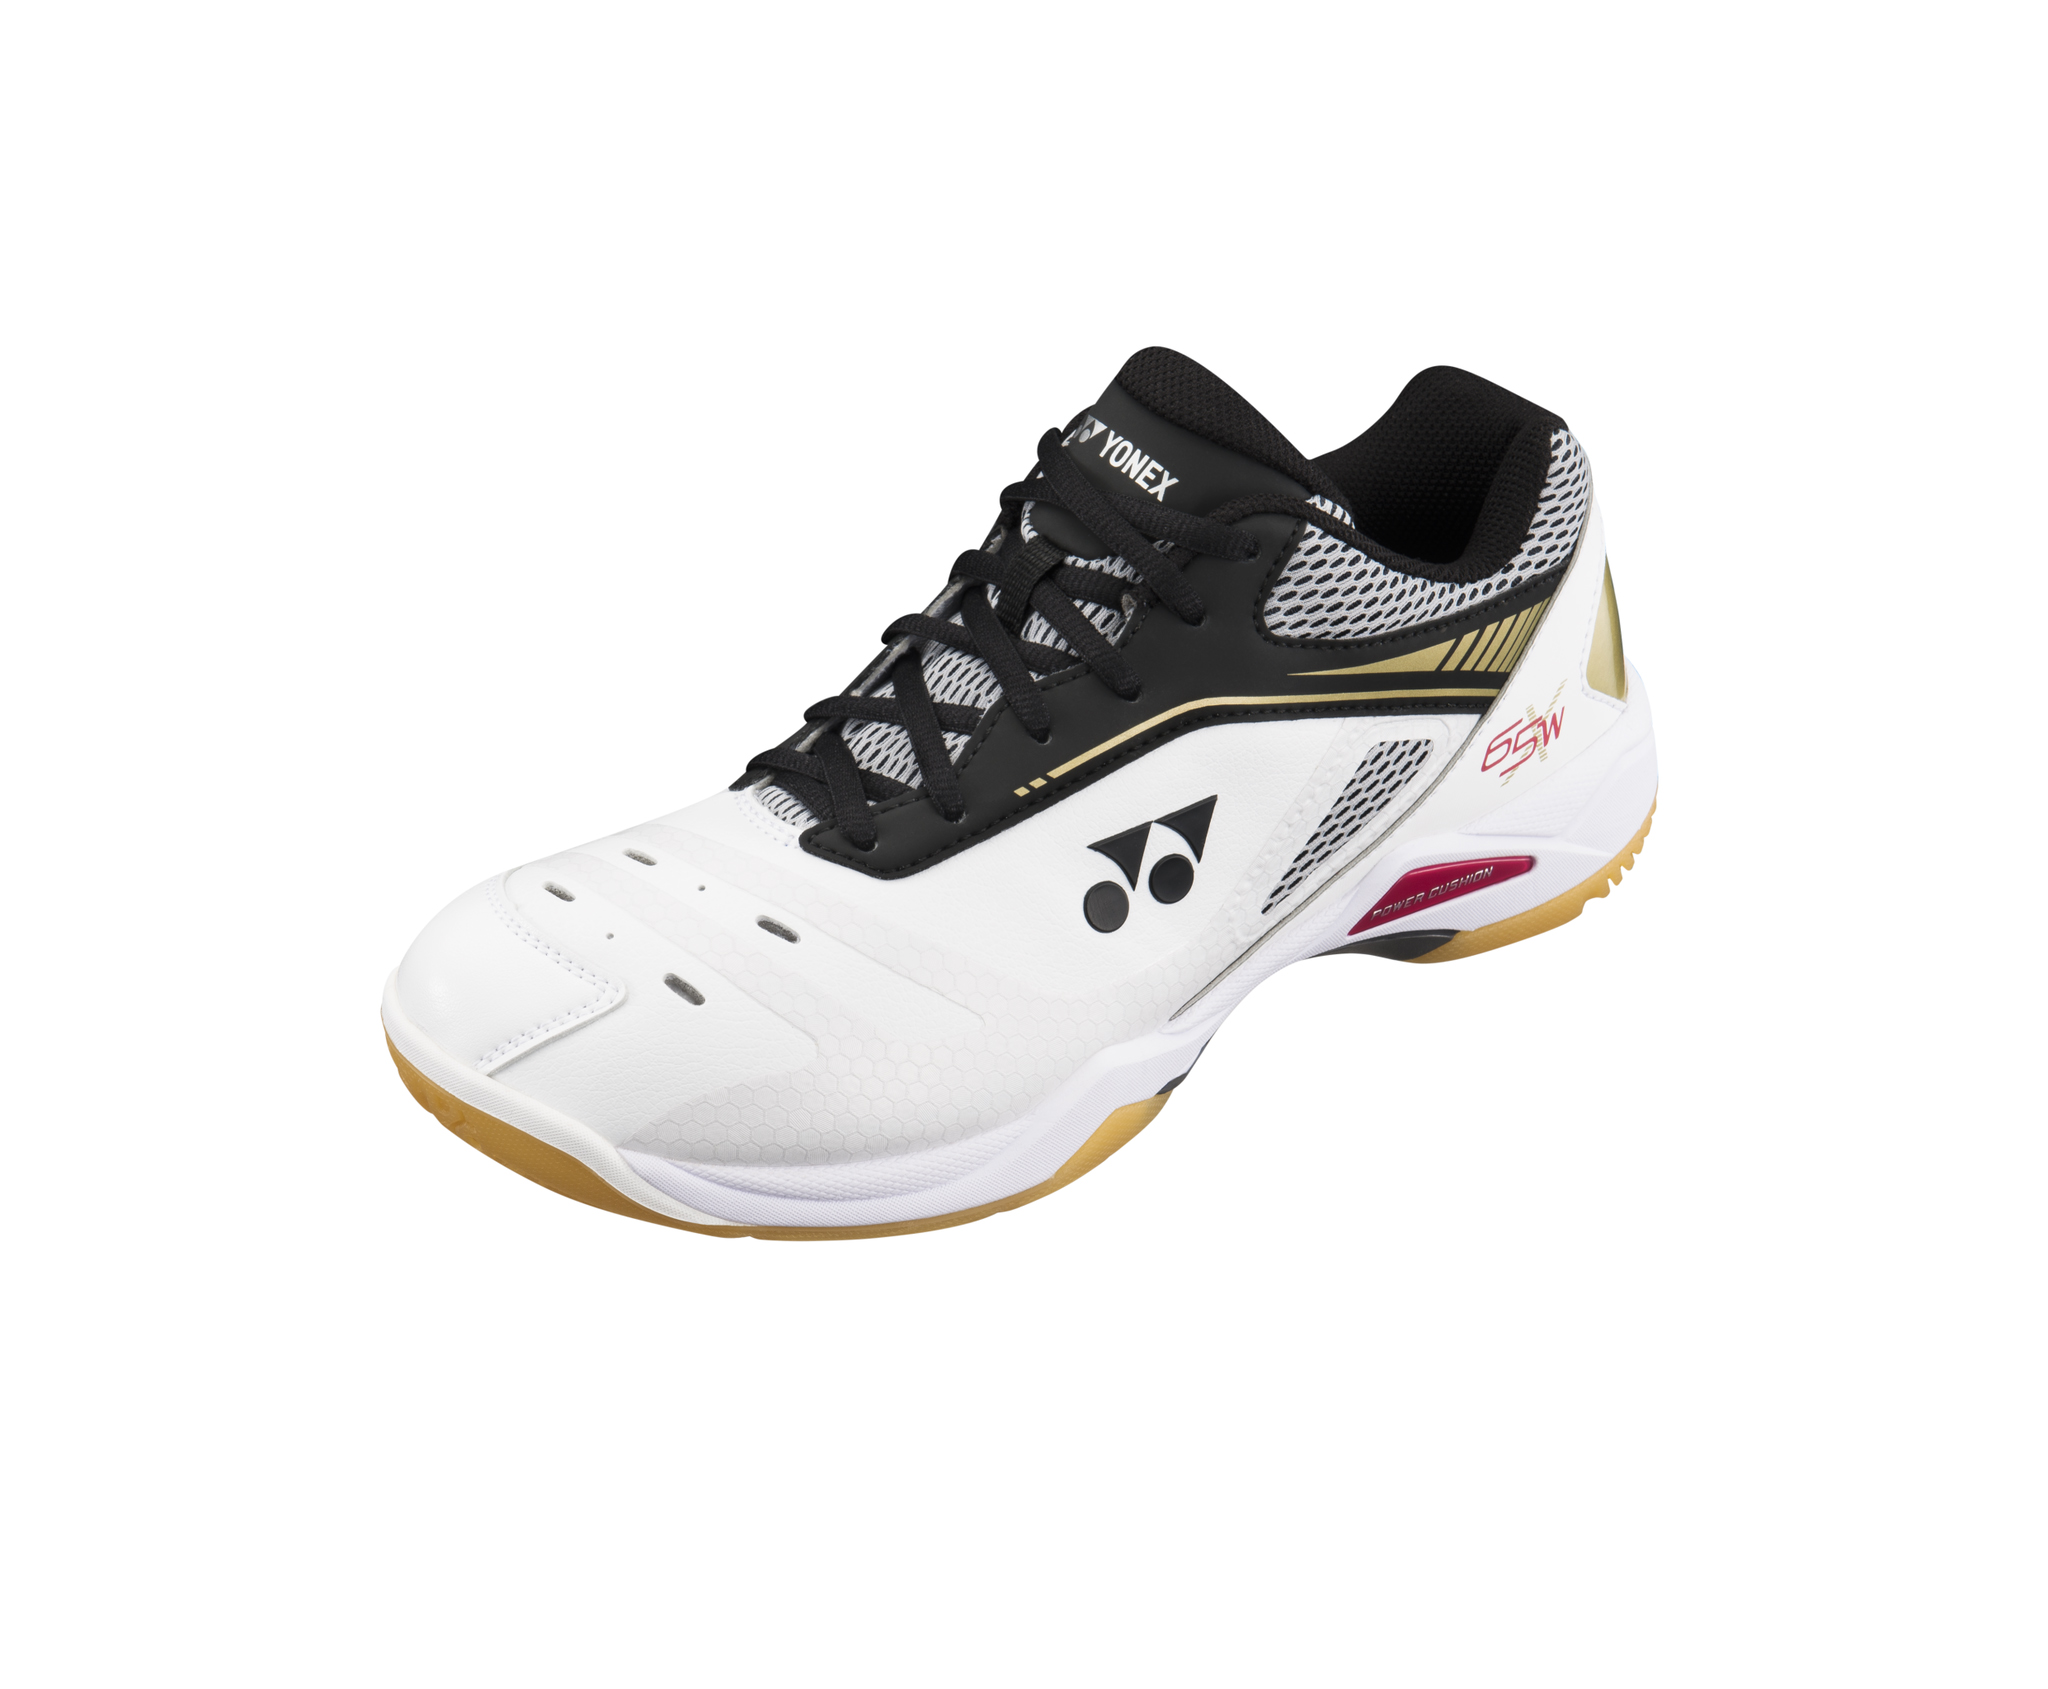 Yonex Power Cushion 65 XW wide